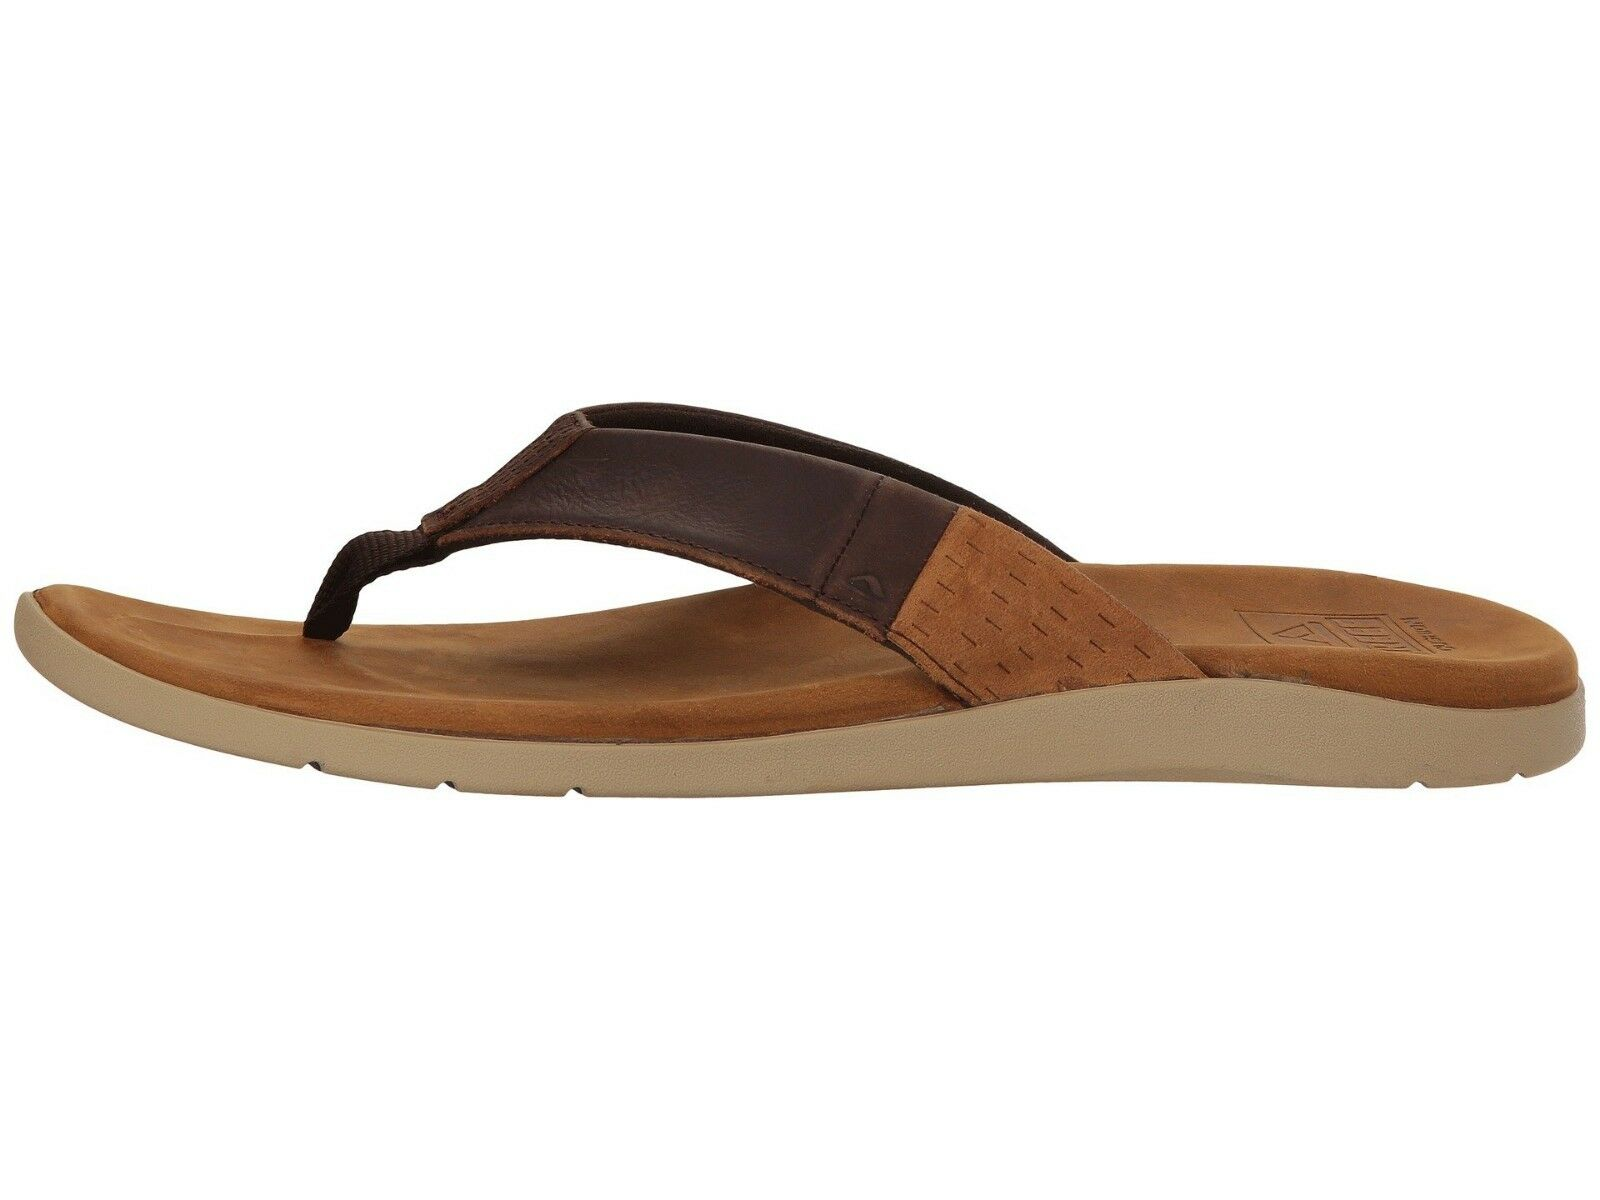 Reef Cushion J Bay Brown Men's Leather Flip Flop Sandals